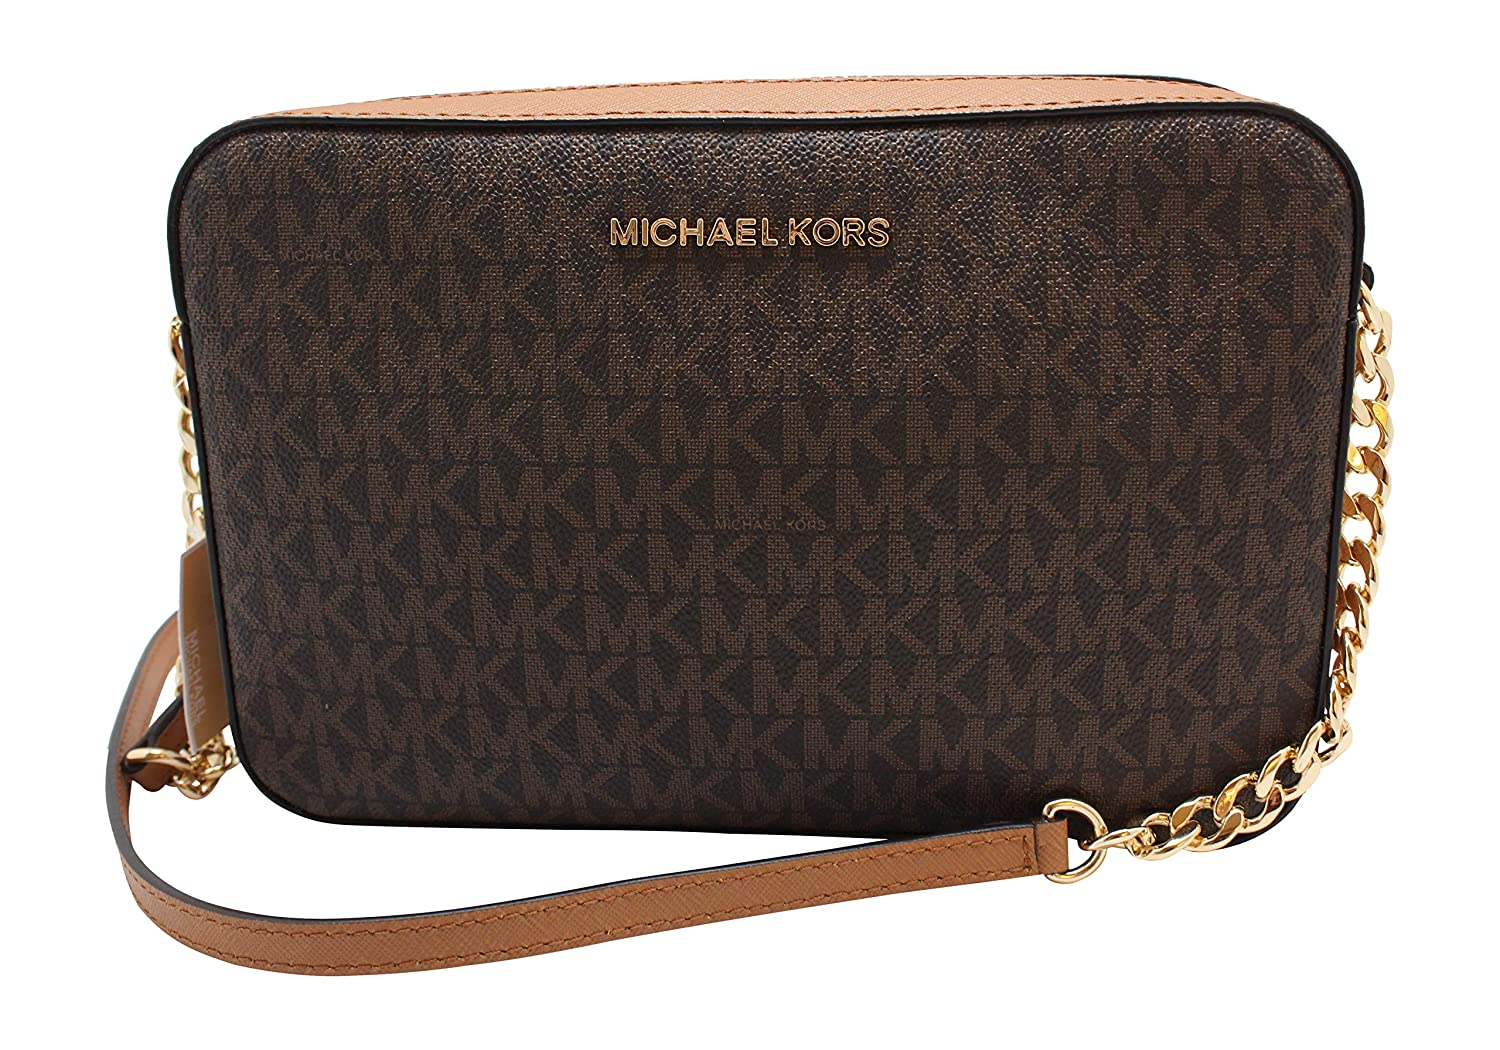 1009042cae35 MICHAEL Michael Kors Women's Large East/West Cross Body Bag (Black PVC  2018): Amazon.ca: Shoes & Handbags